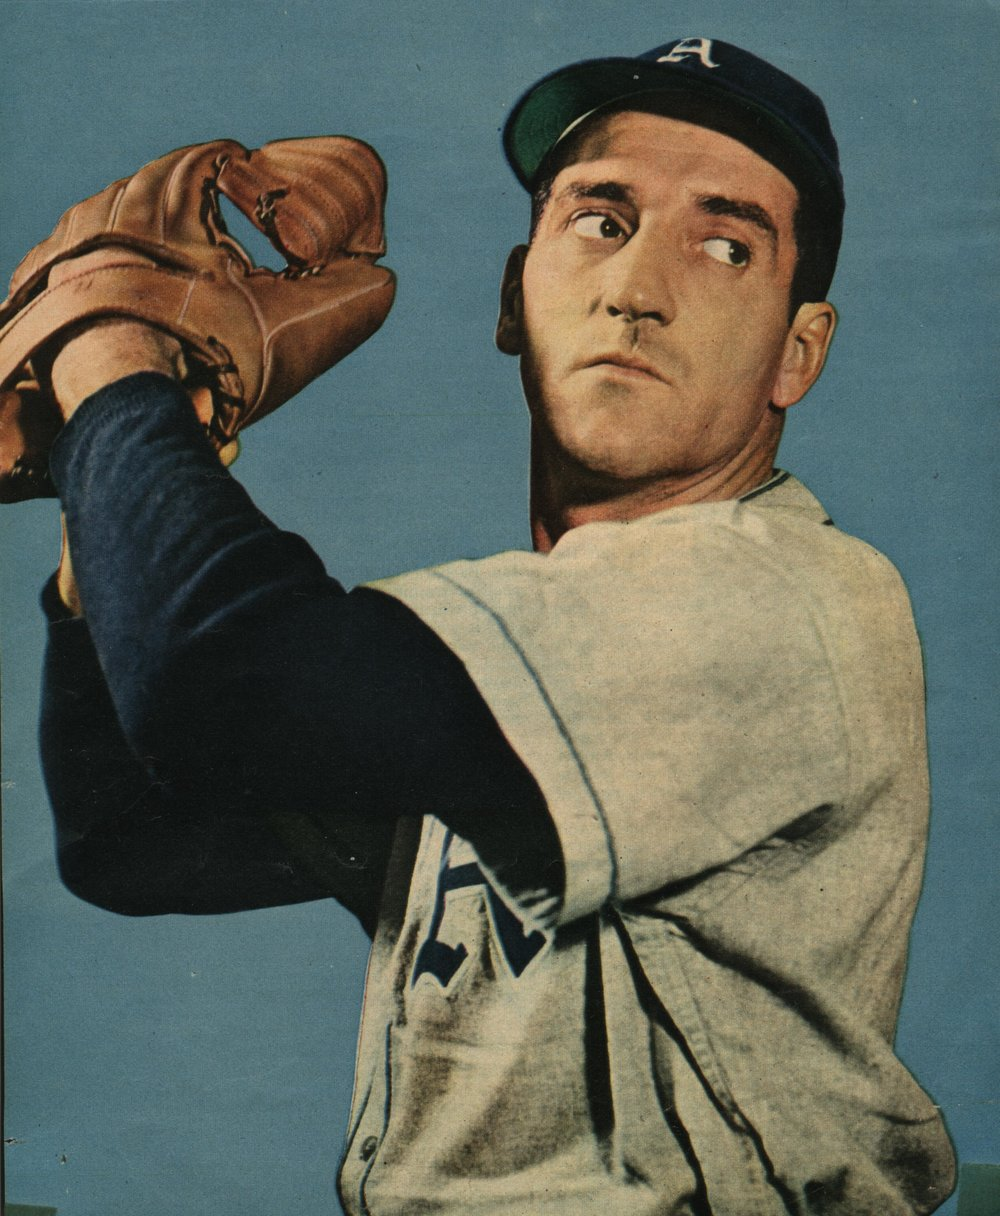 Penetanguishene, Ont., native Phil Marchildon was the ace of the Philadelphia A's pitching staff in the 1940s, but he was also a Second World War hero. Photo Credit: Canadian Baseball Hall of Fame